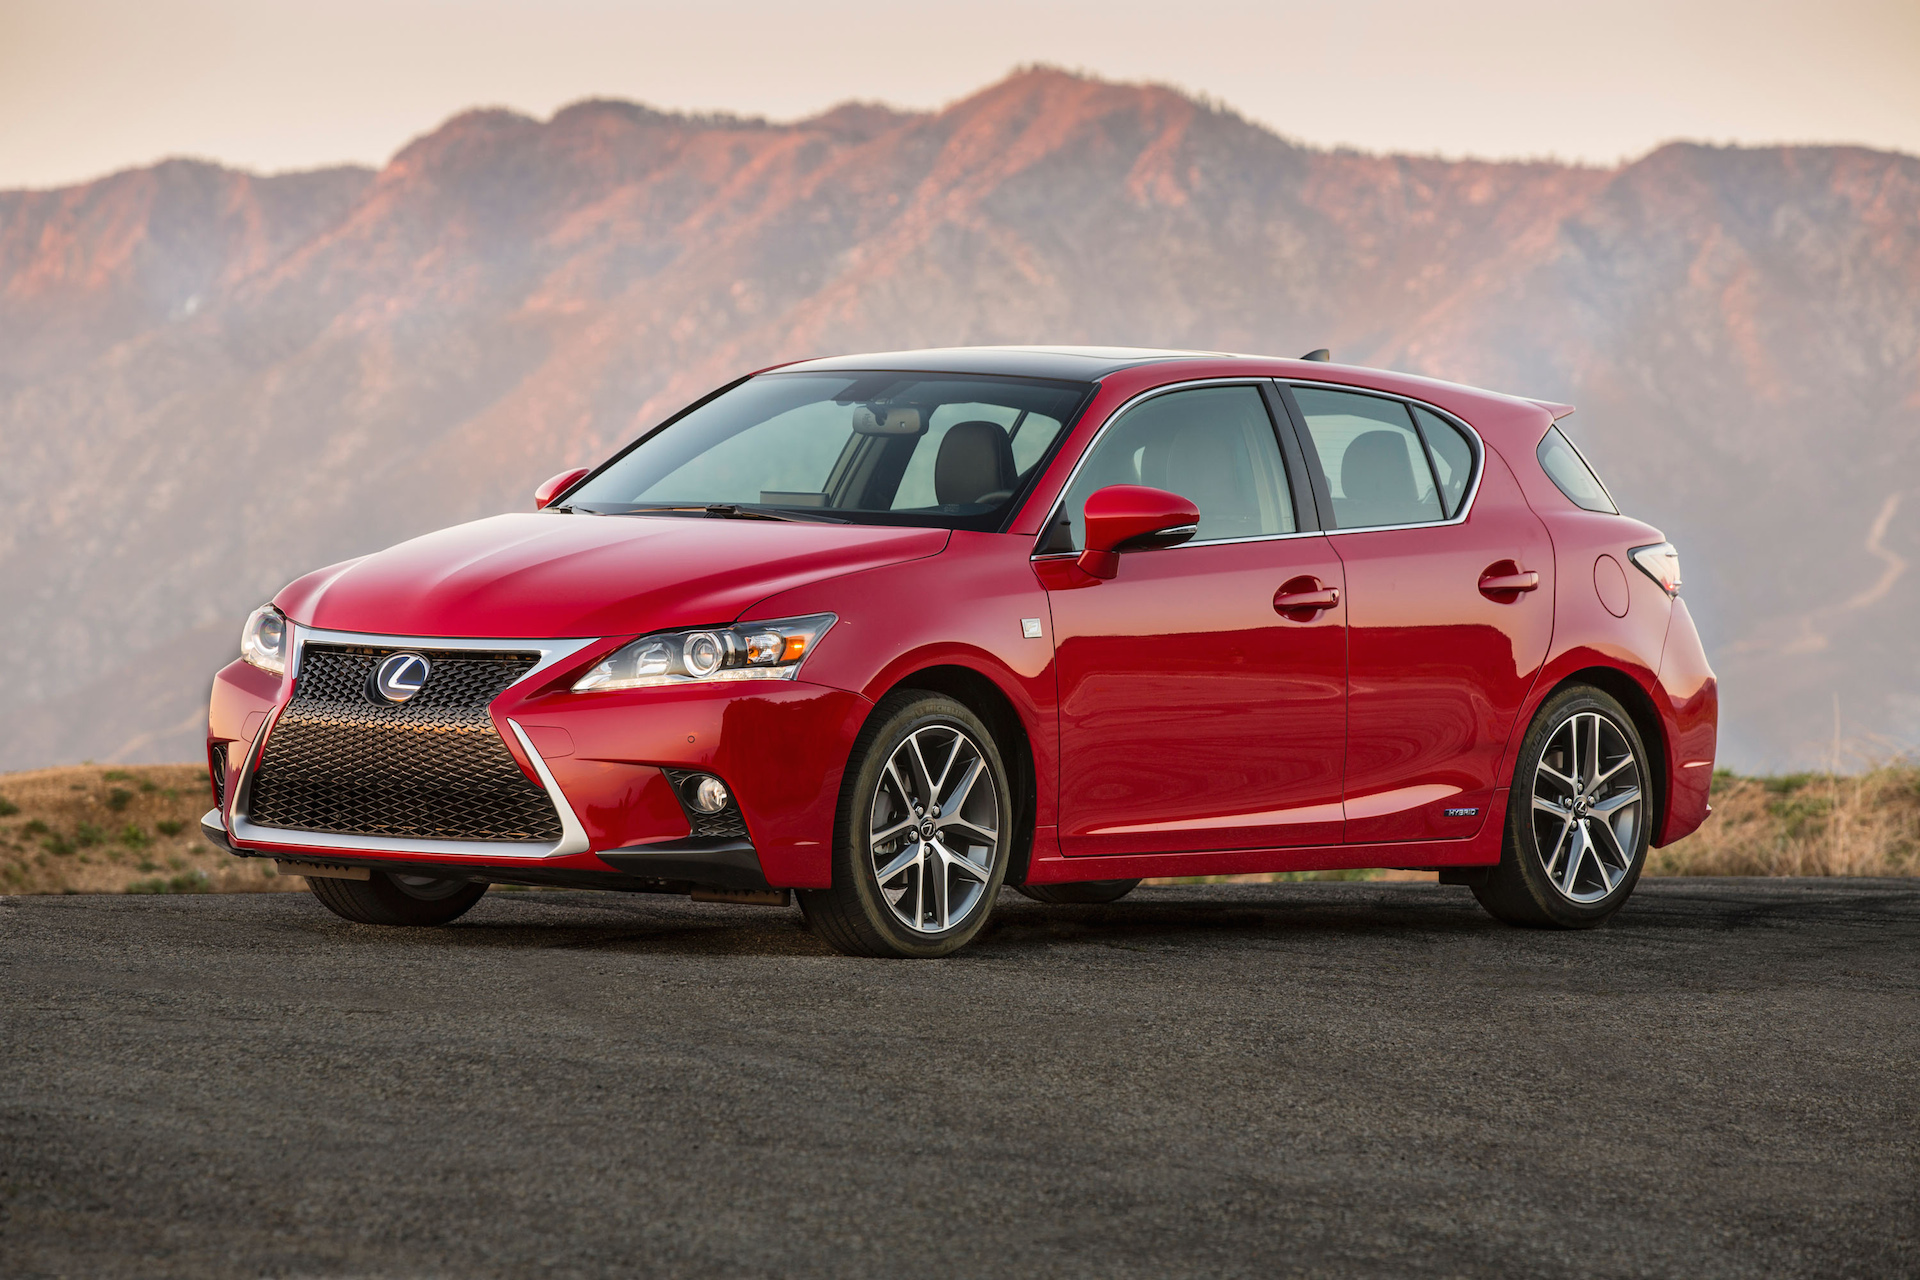 2015 Lexus CT 200h Review, Ratings, Specs, Prices, and ...